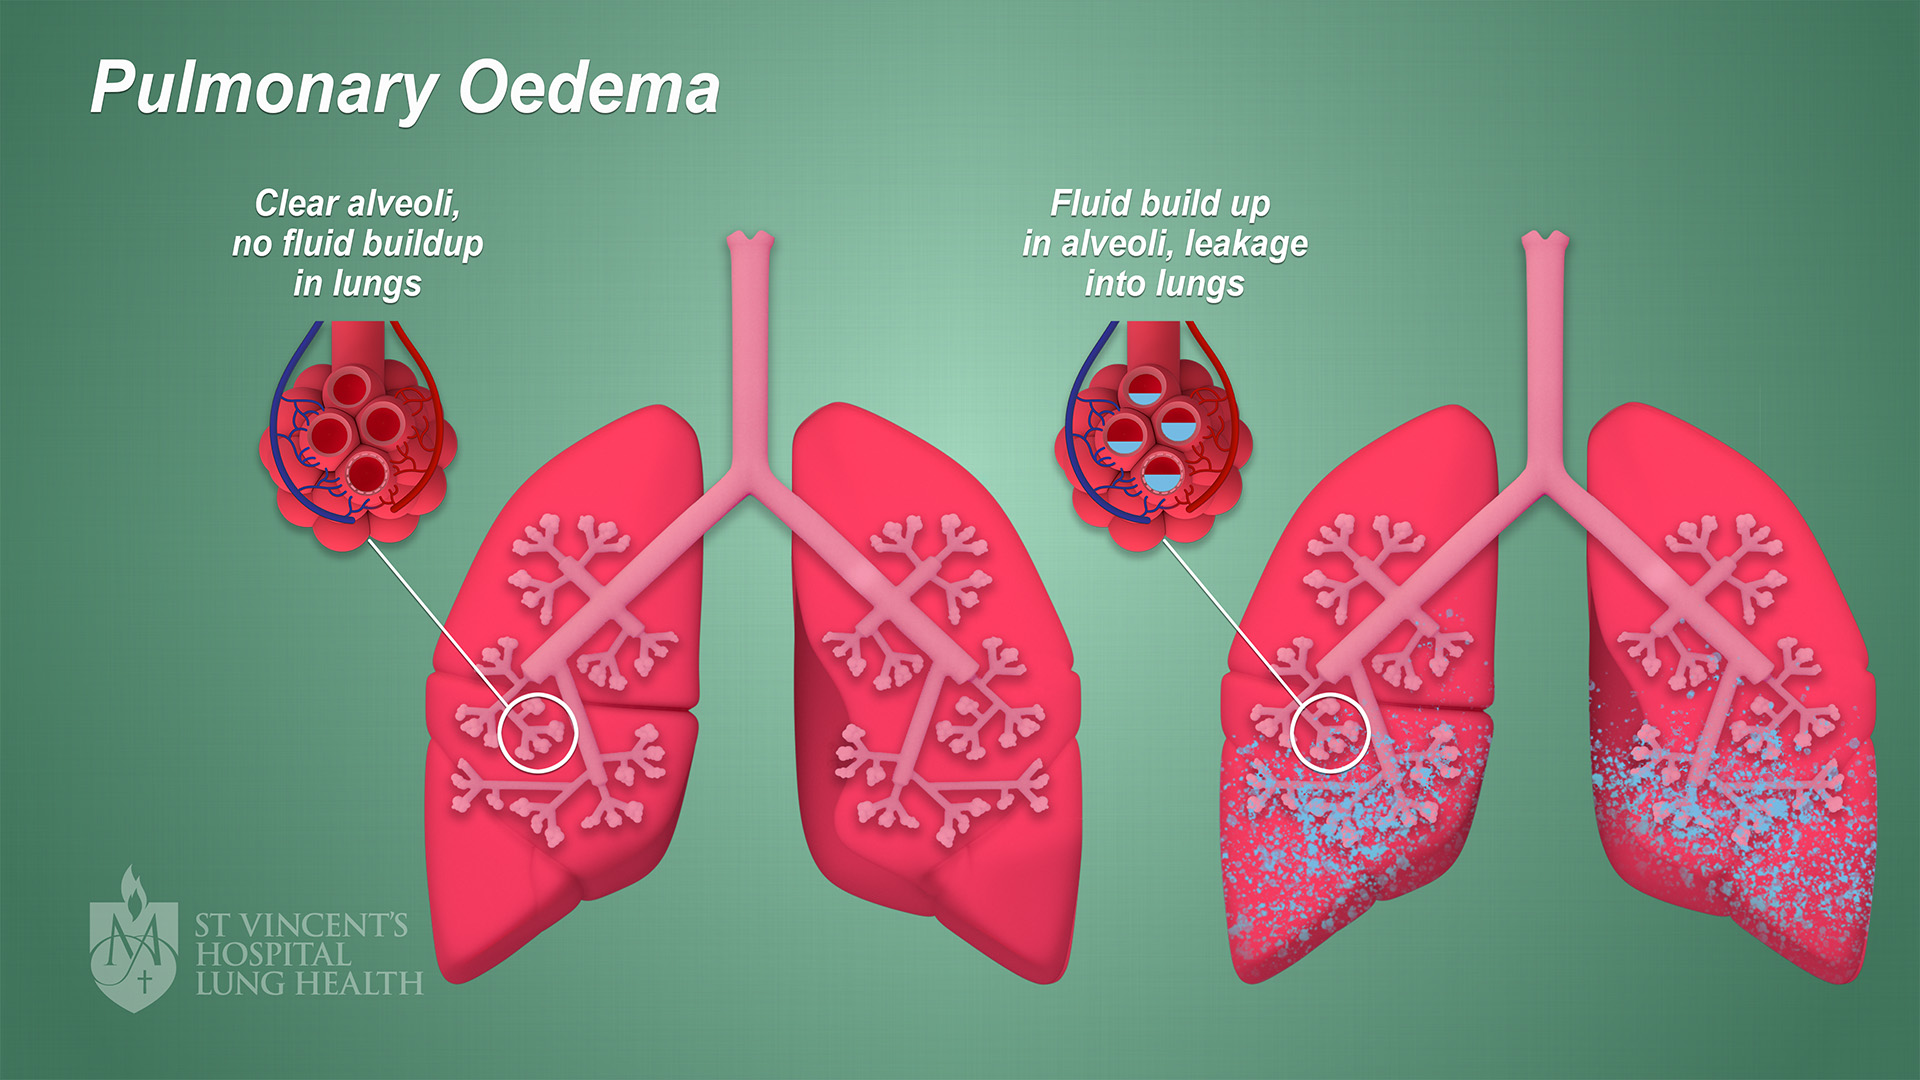 10_SVH_Lung_Health_Pulmonary_Oedema_final_1080p